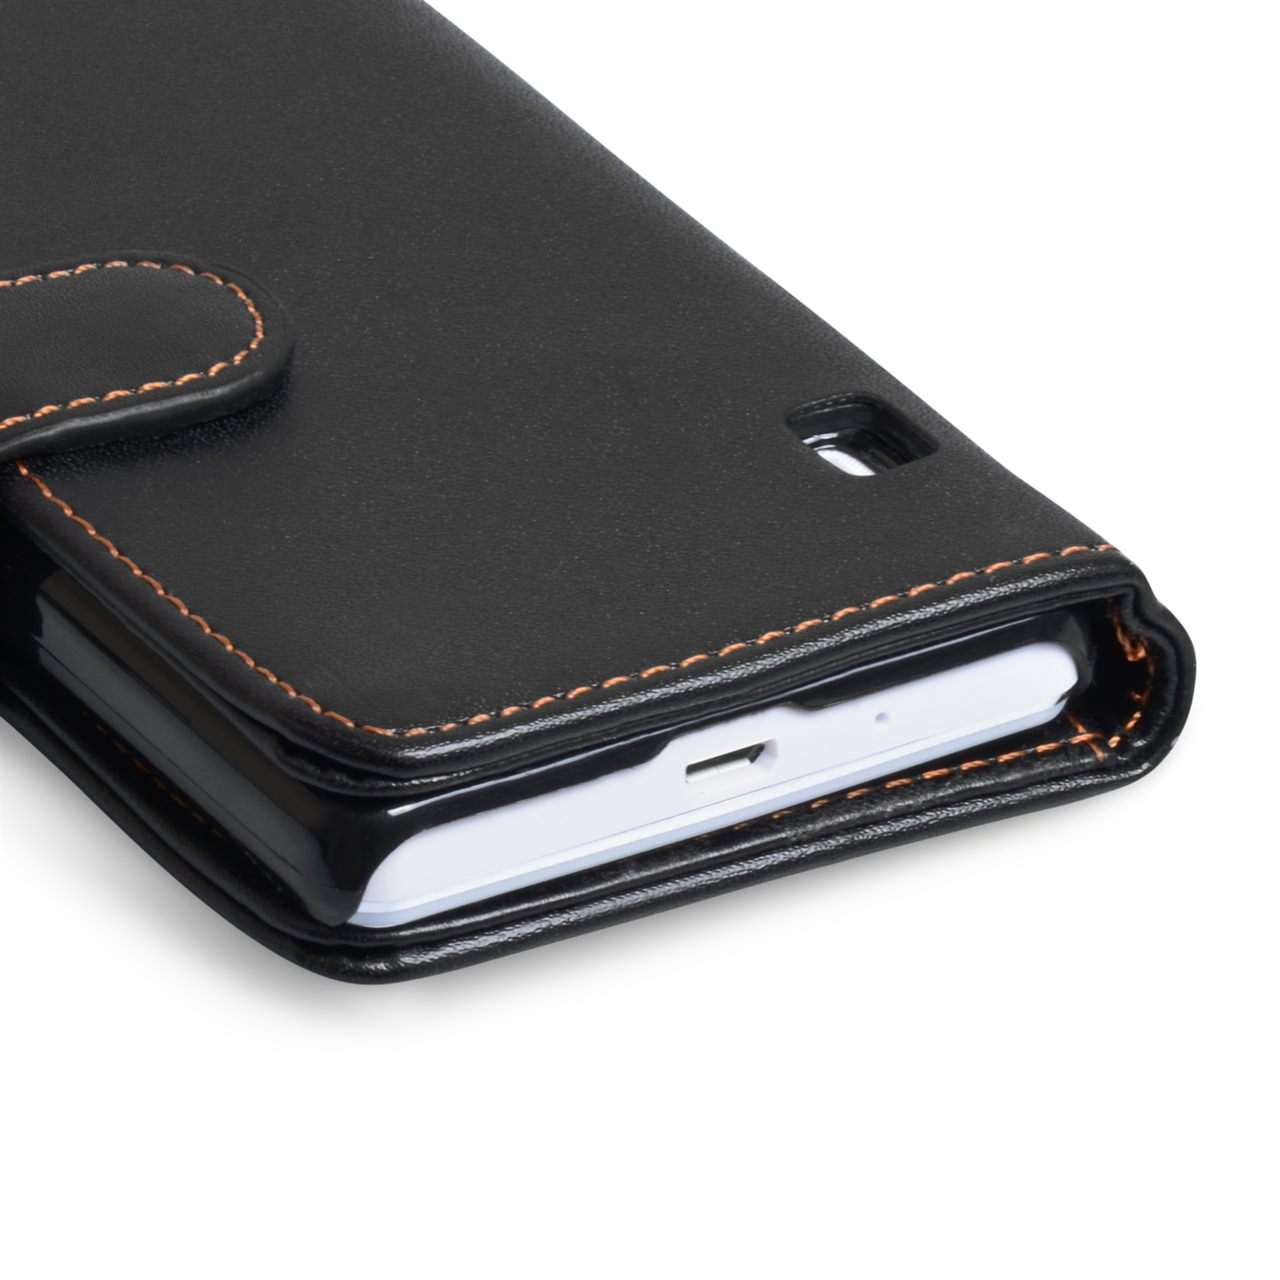 YouSave Nokia Lumia 1020 Textured Faux Leather Wallet Case - Black